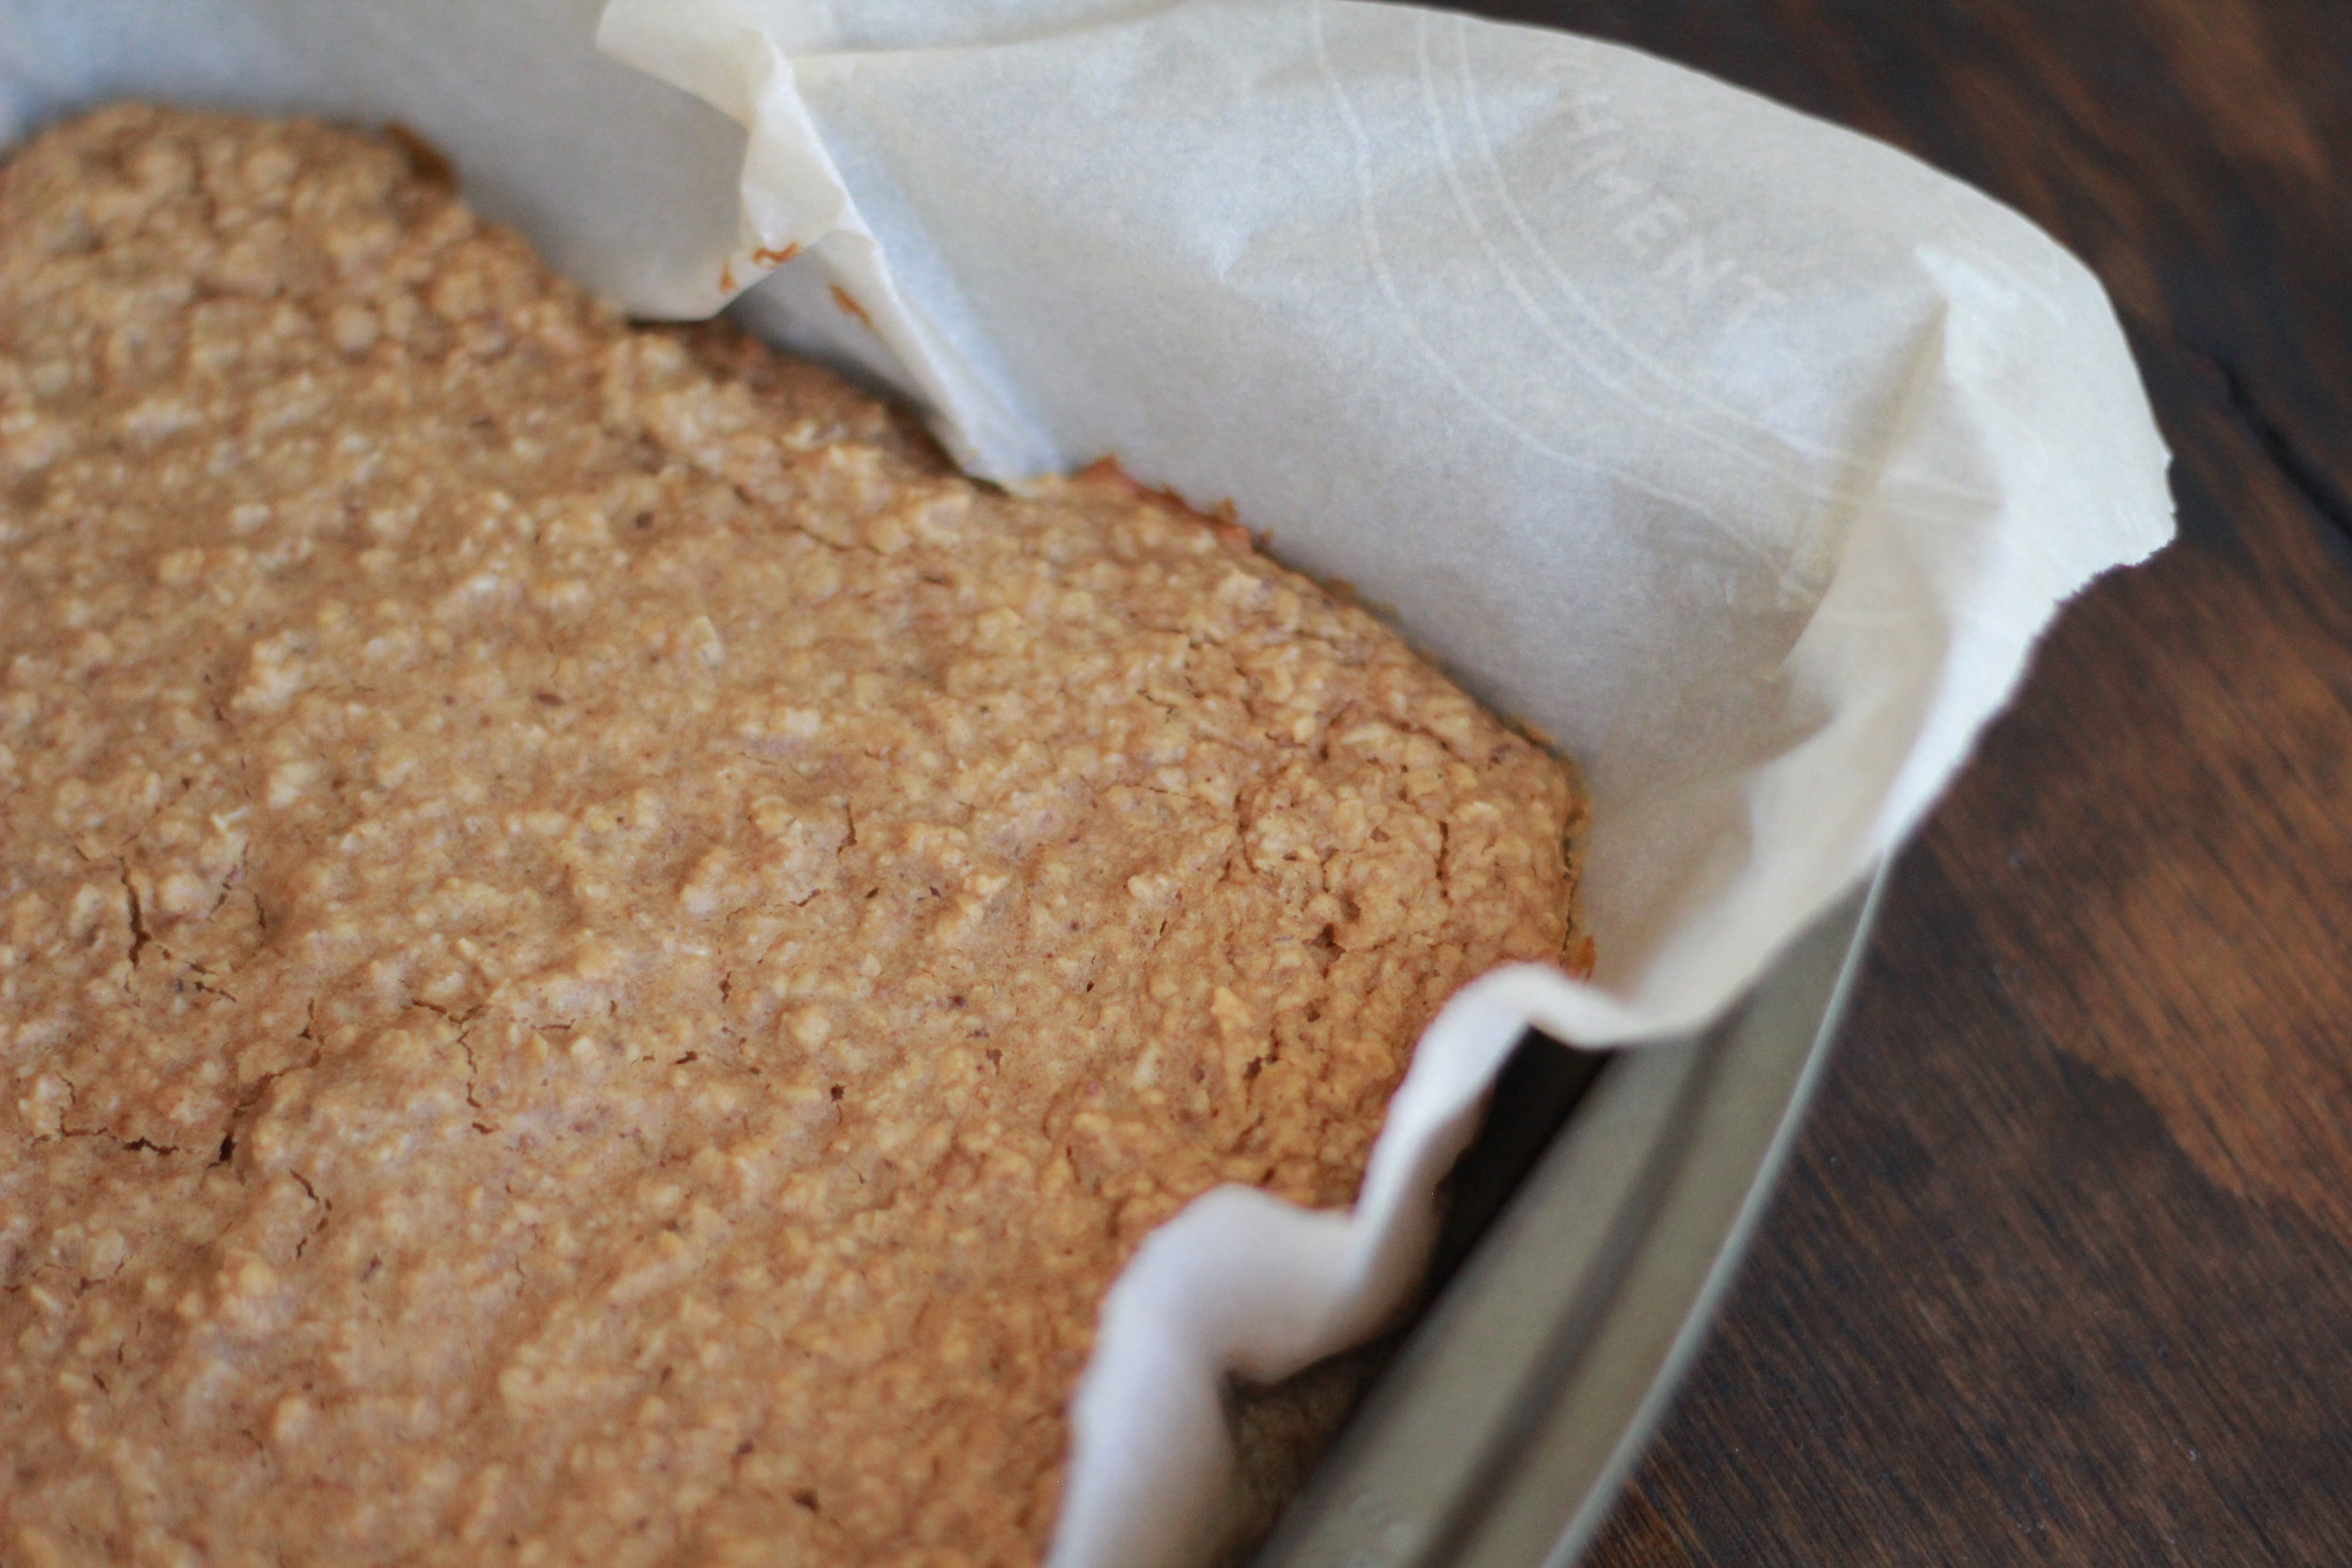 Quick Peanut Butter Baked Oatmeal | Wholesome LLC